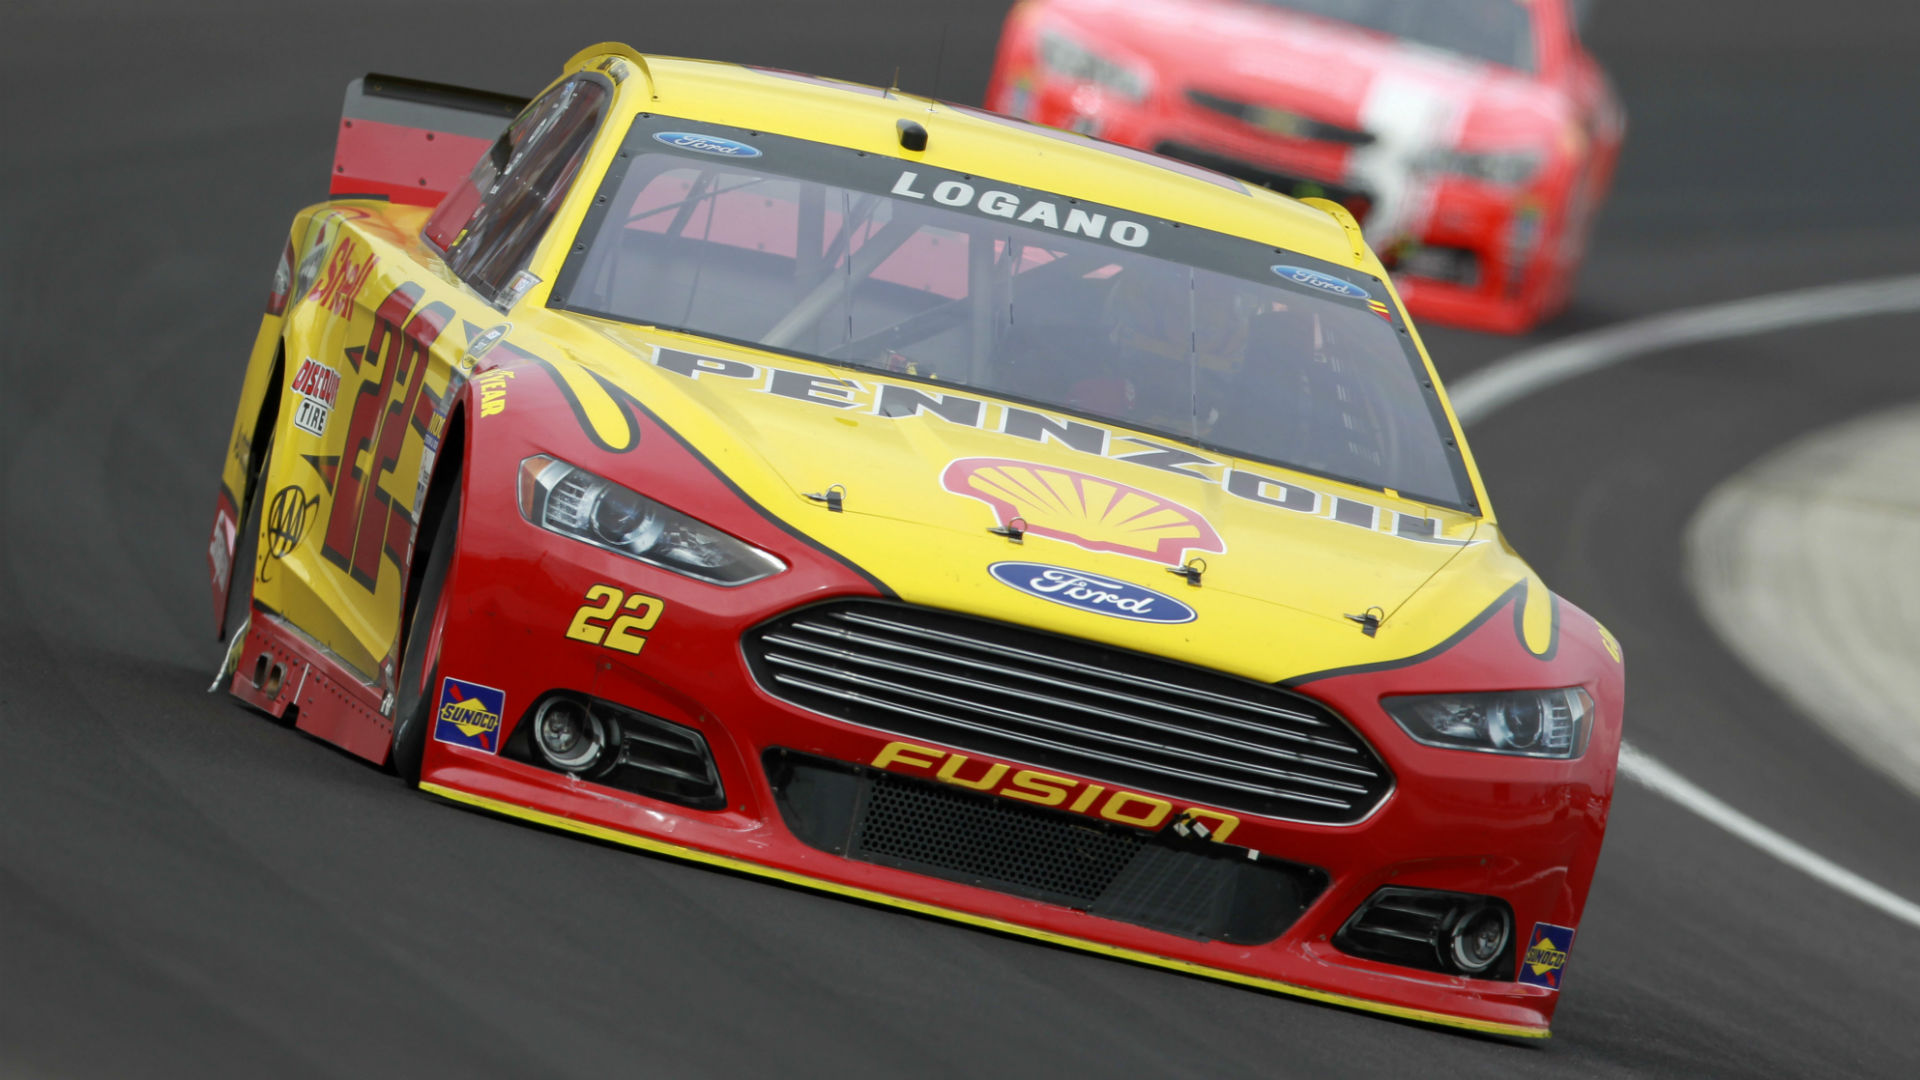 More heartache for Joey Logano